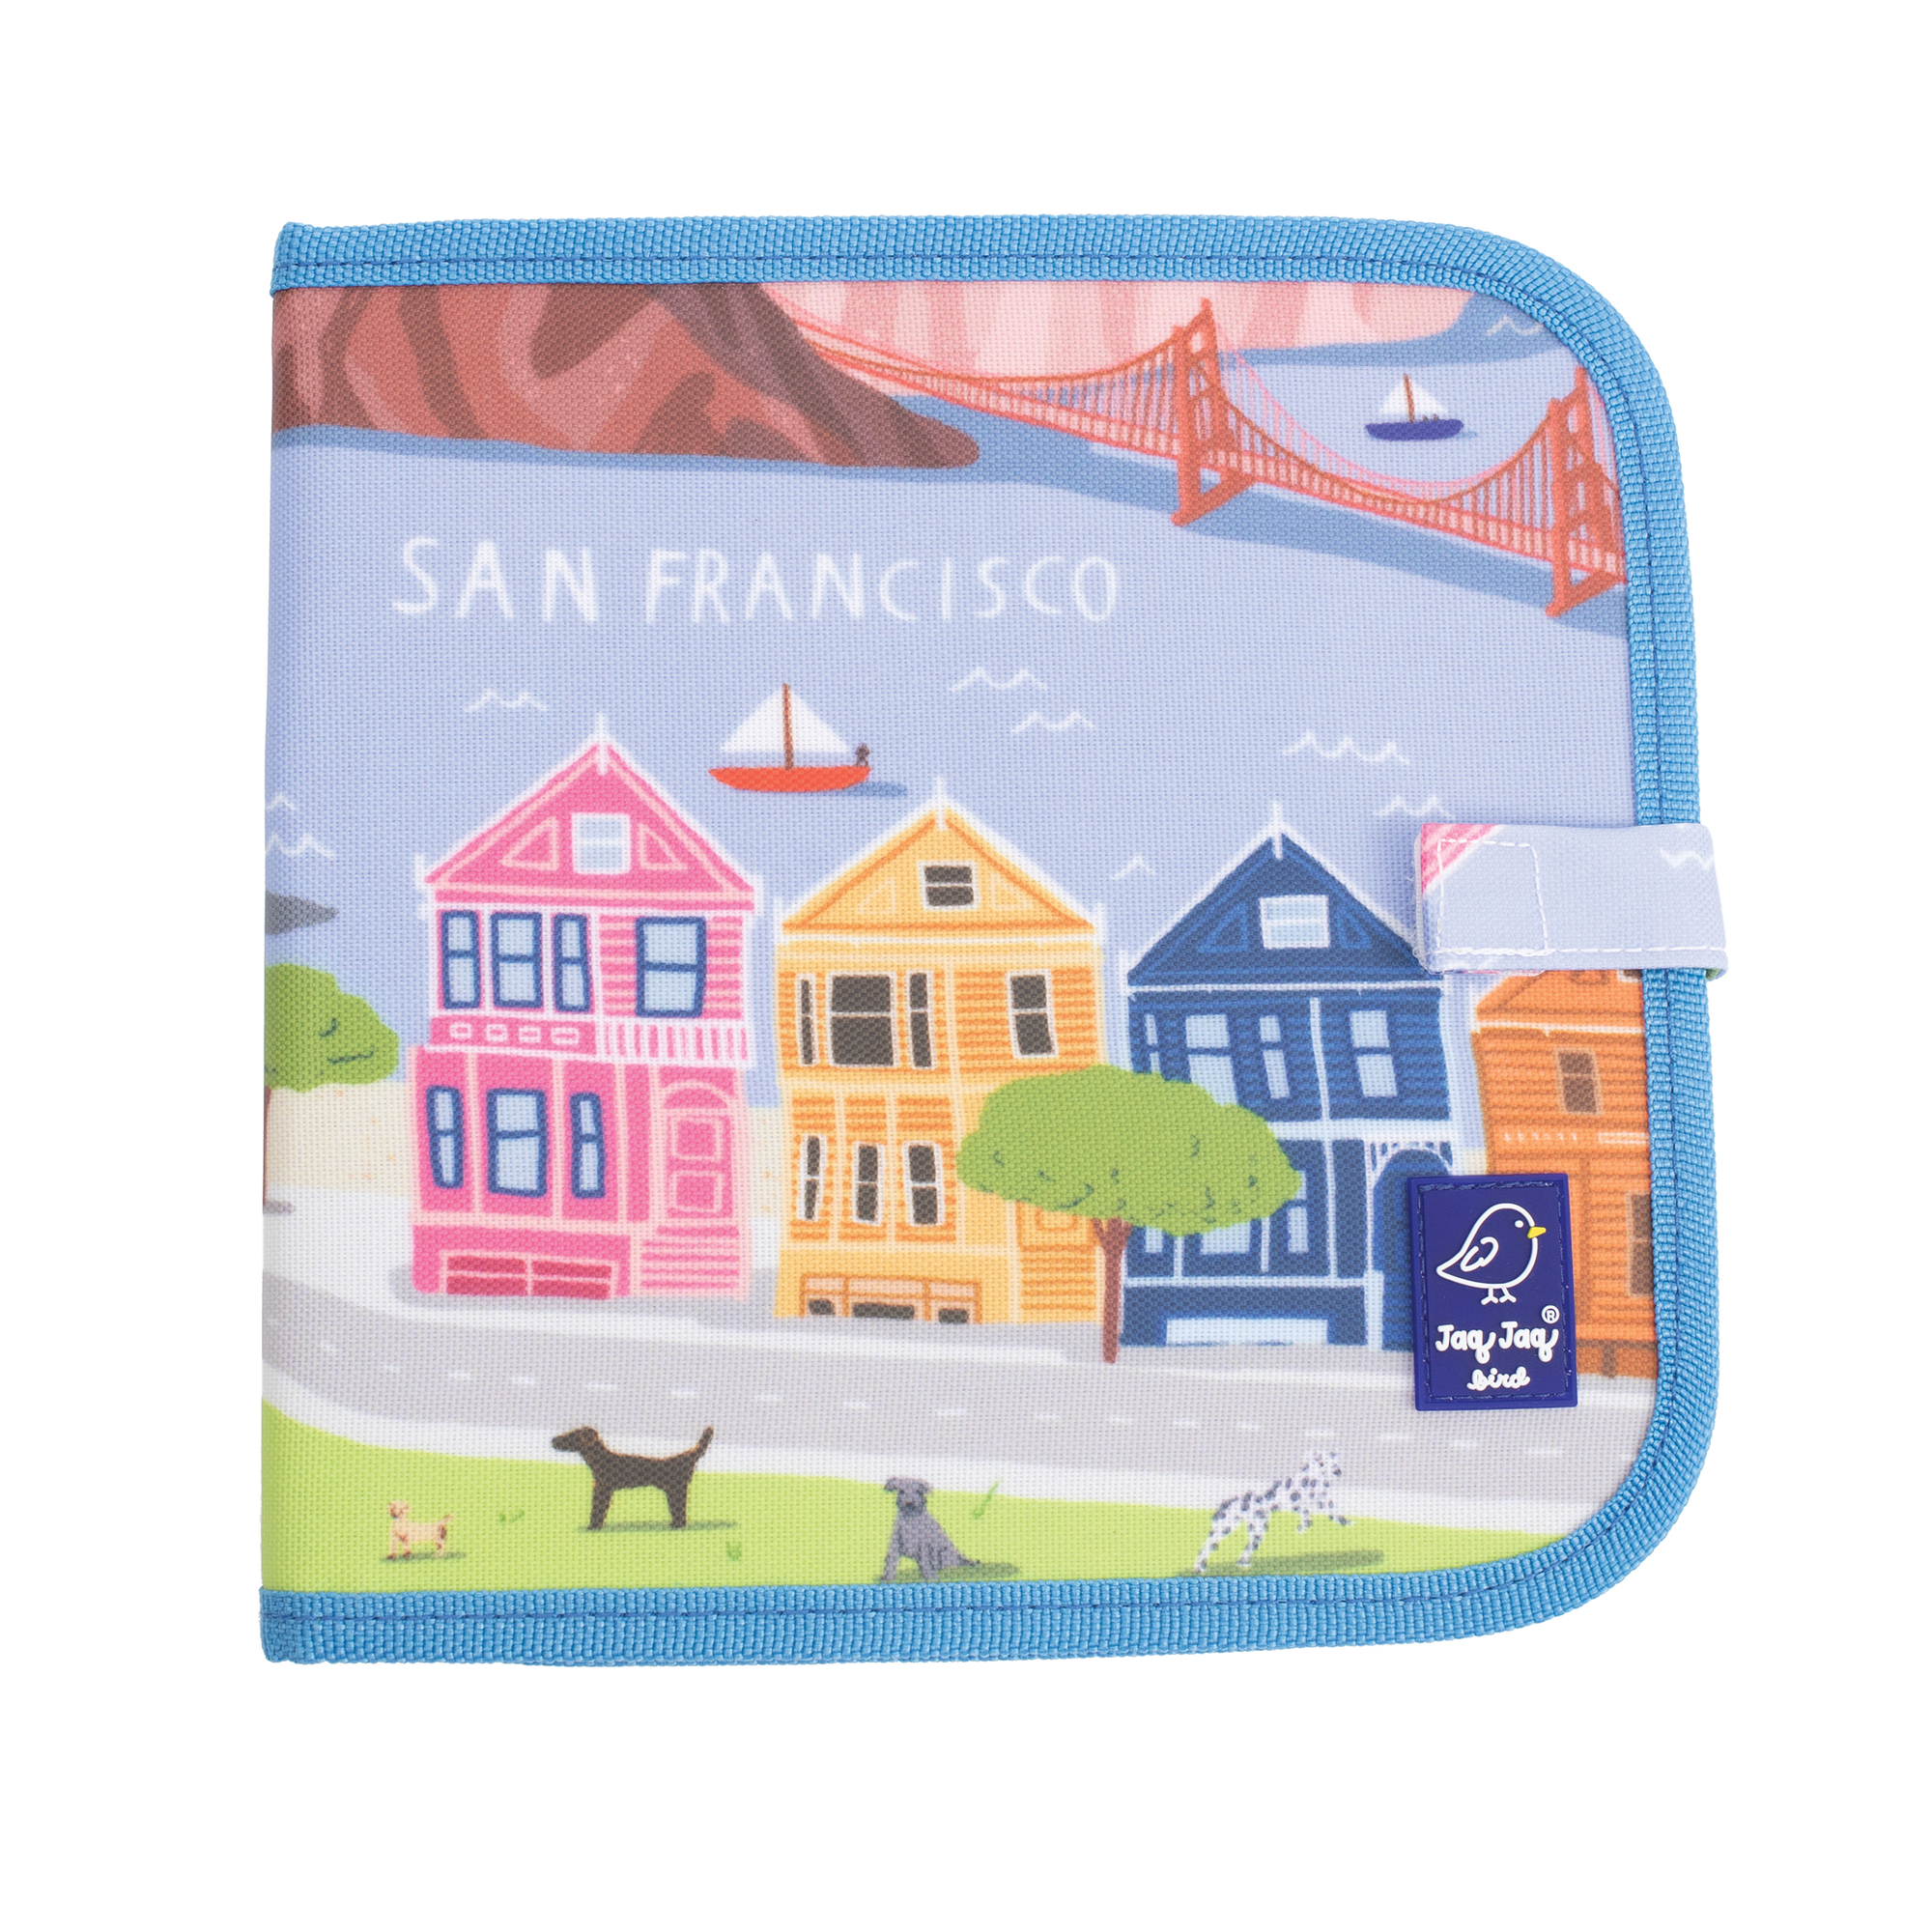 Jaq Jaq Bird: Cities of Wonder erasable book - San Francisco